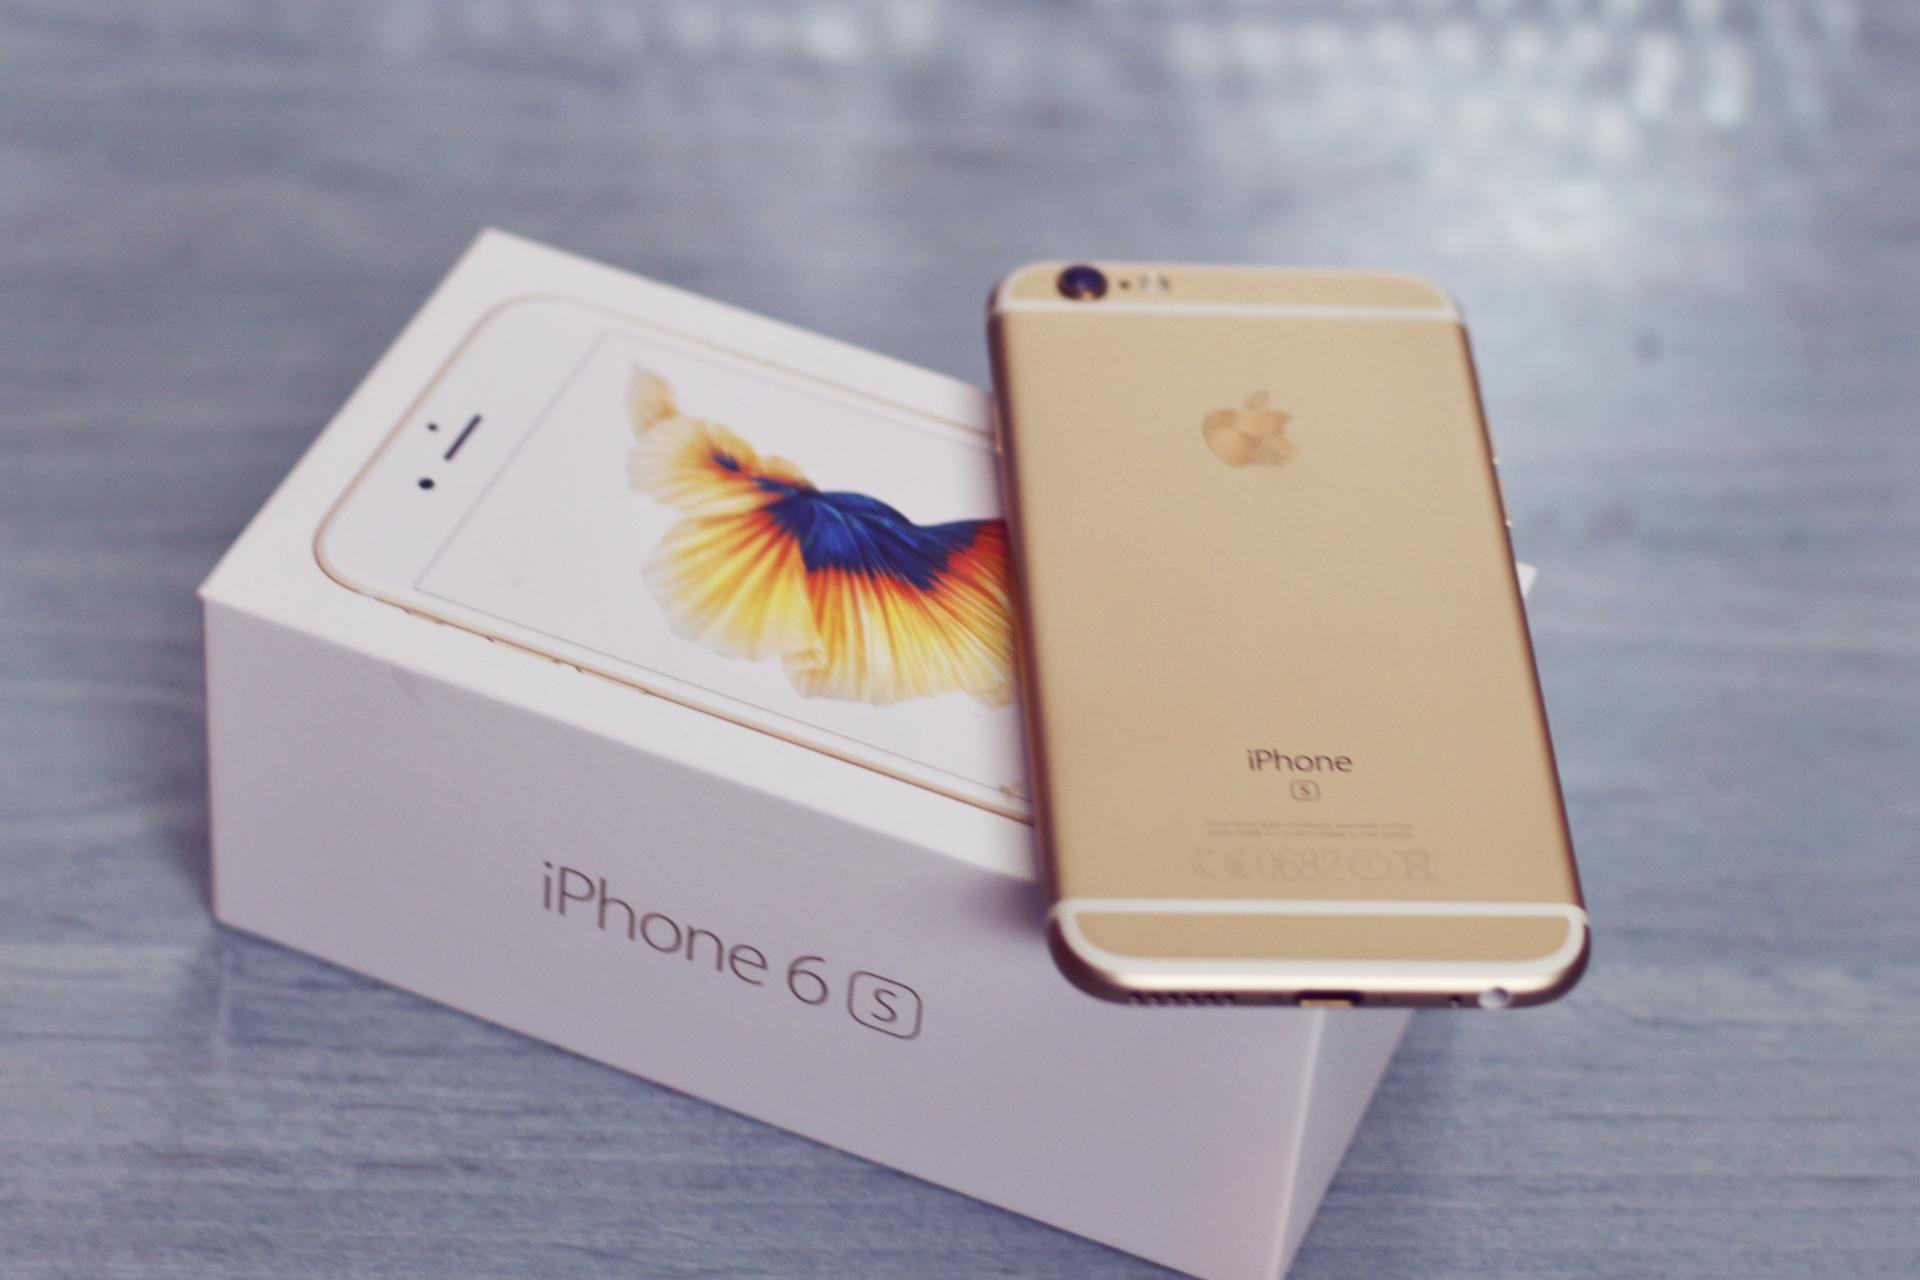 gold iphone 6s my new iphone 6s gold kitten manchester fashion 2105